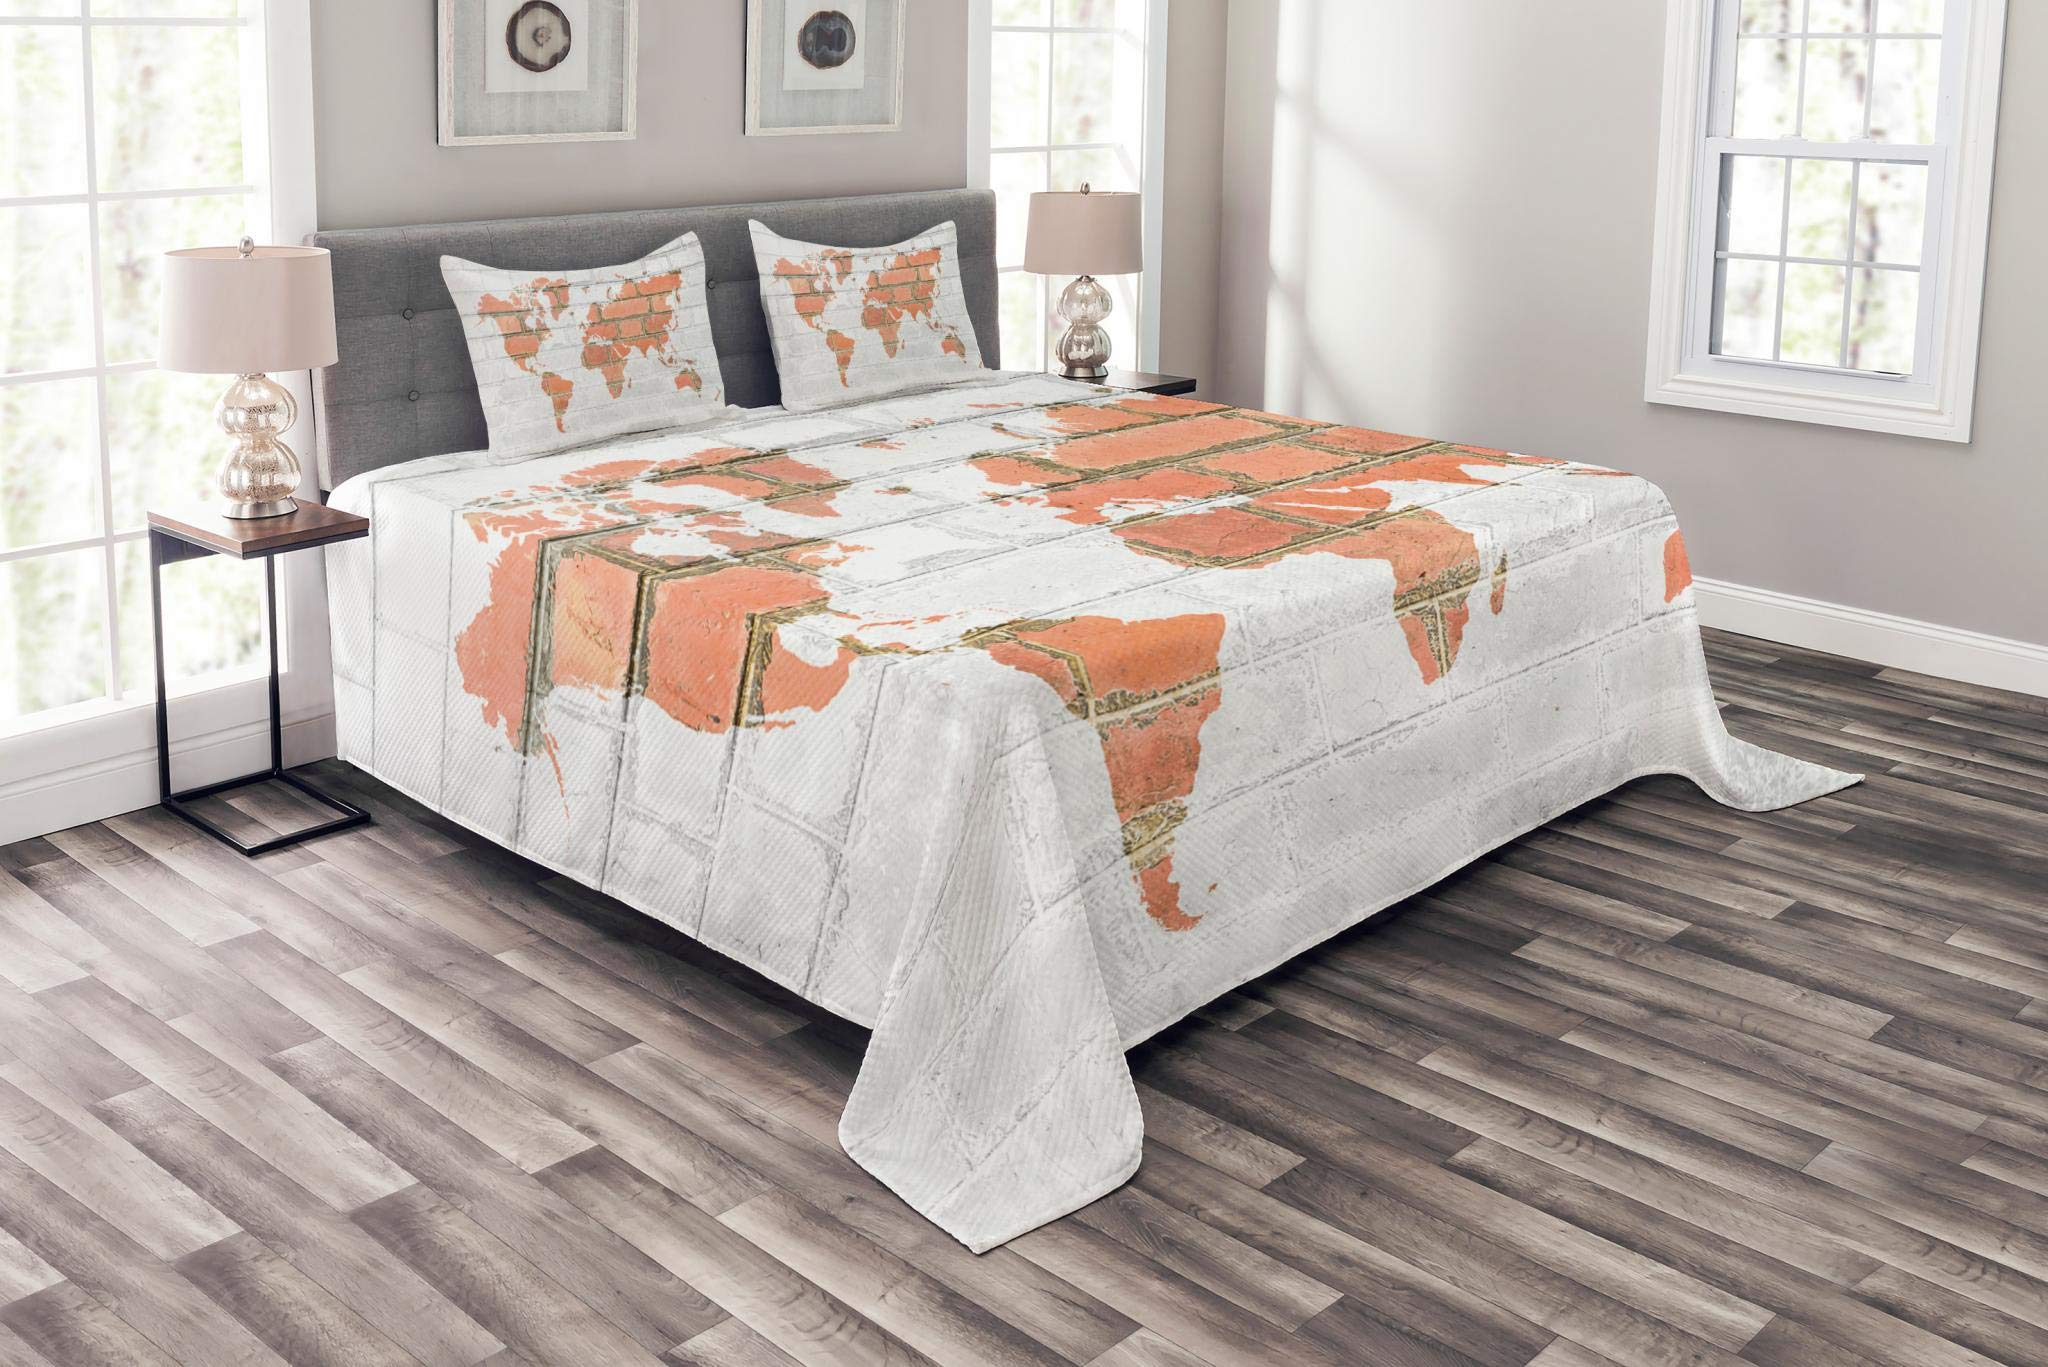 Lunarable Brick Wall Bedspread Set Queen Size, World Atlas Map on Grunge Style Red Brick Wall Continent Retro Abstract Art, Decorative Quilted 3 Piece Coverlet Set with 2 Pillow Shams, White Tile Red